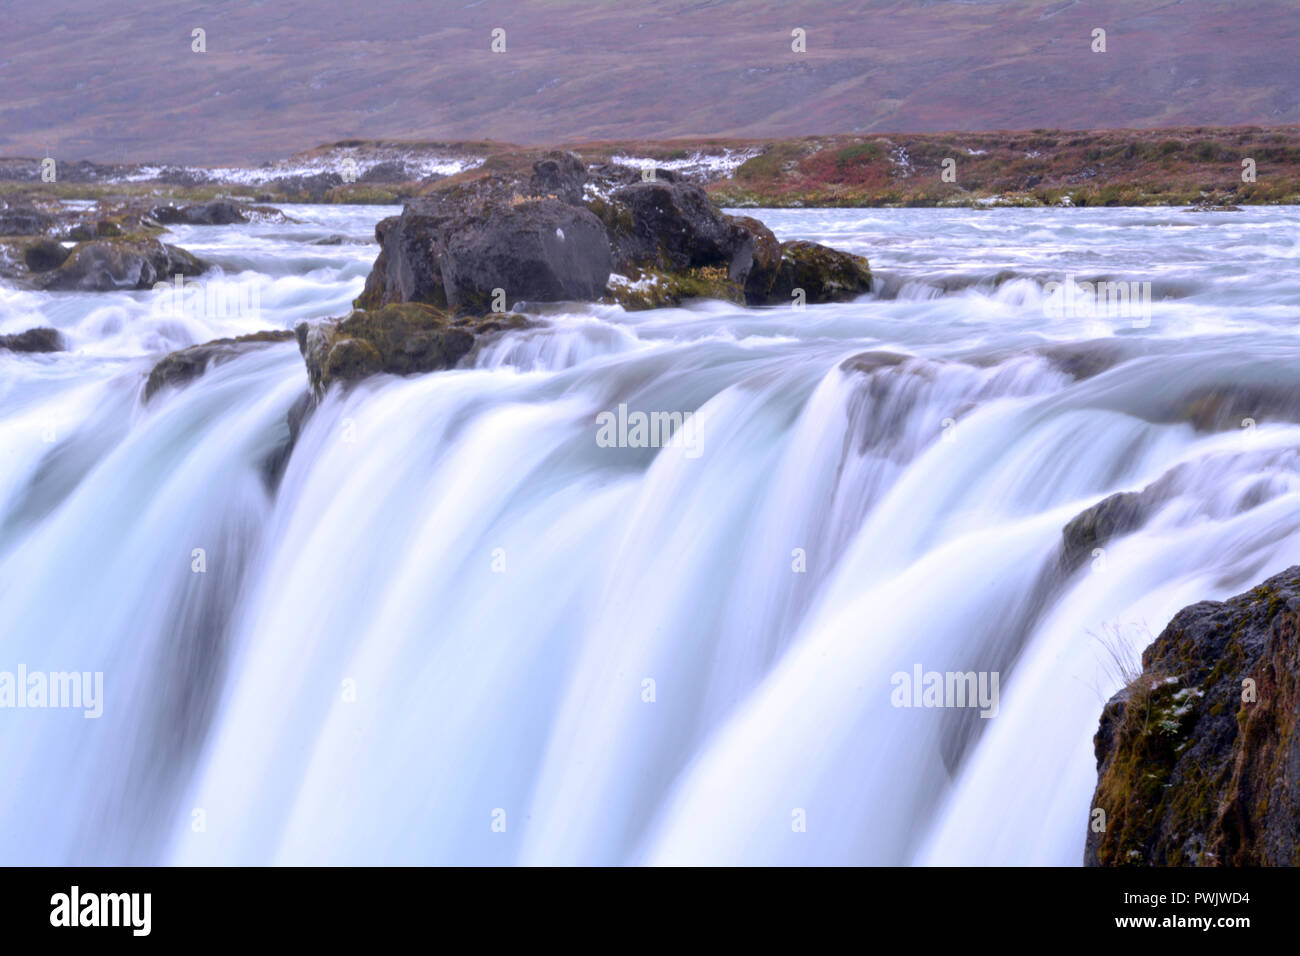 Blurred Waterfall in Iceland - Stock Image